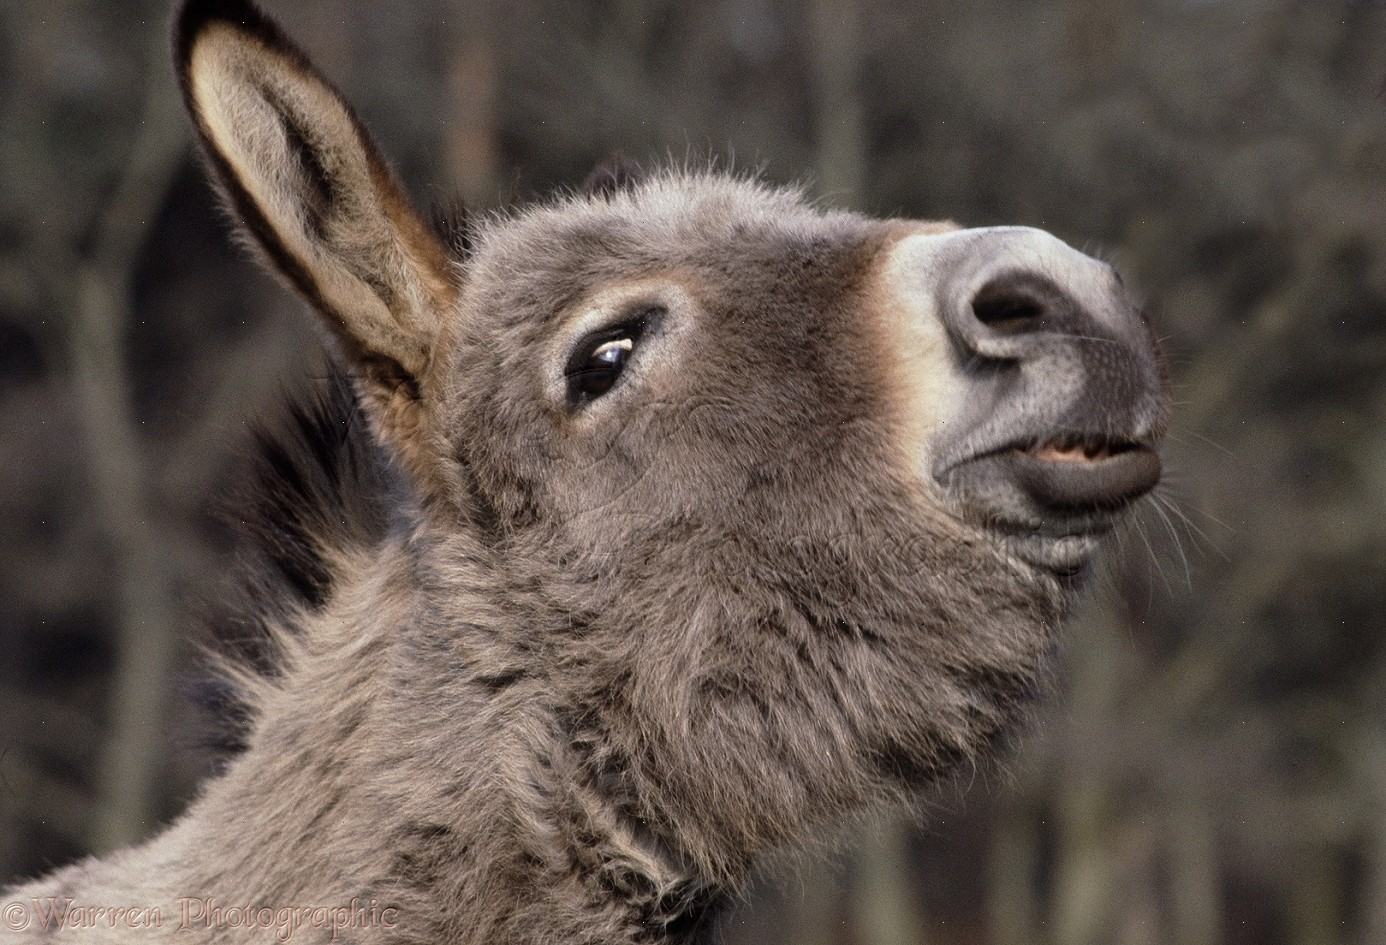 funny donkey faces - photo #22